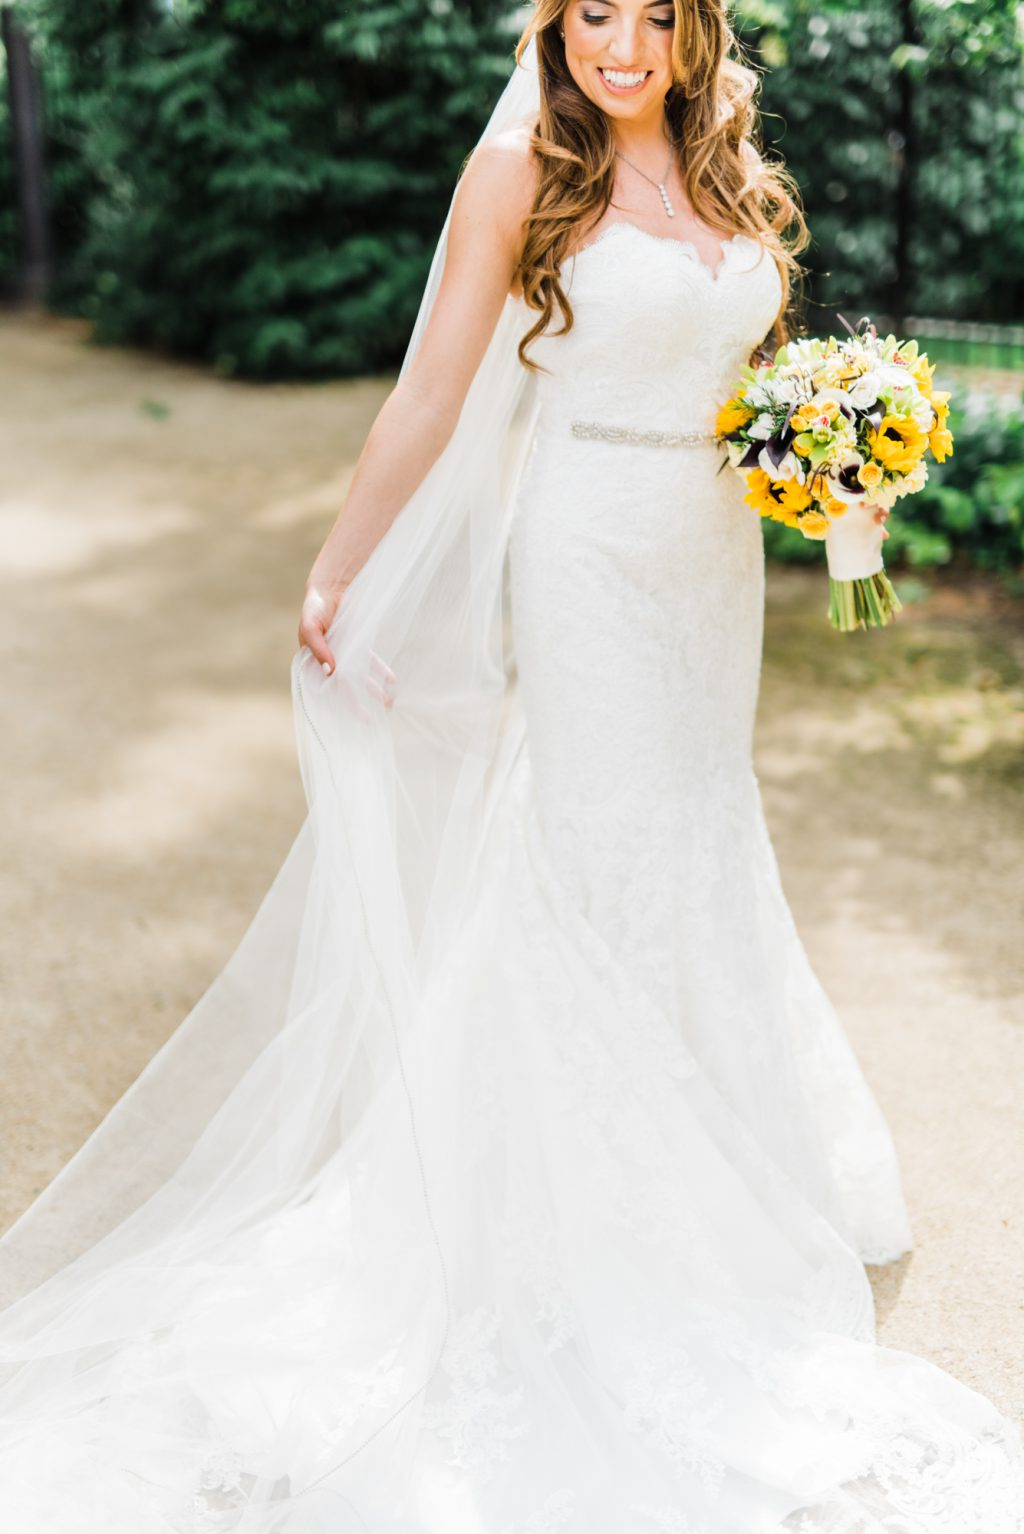 haleyrichterphoto-front-and-palmer-spring-wedding-rodin-museum-loews-hotel-philadelphia-079